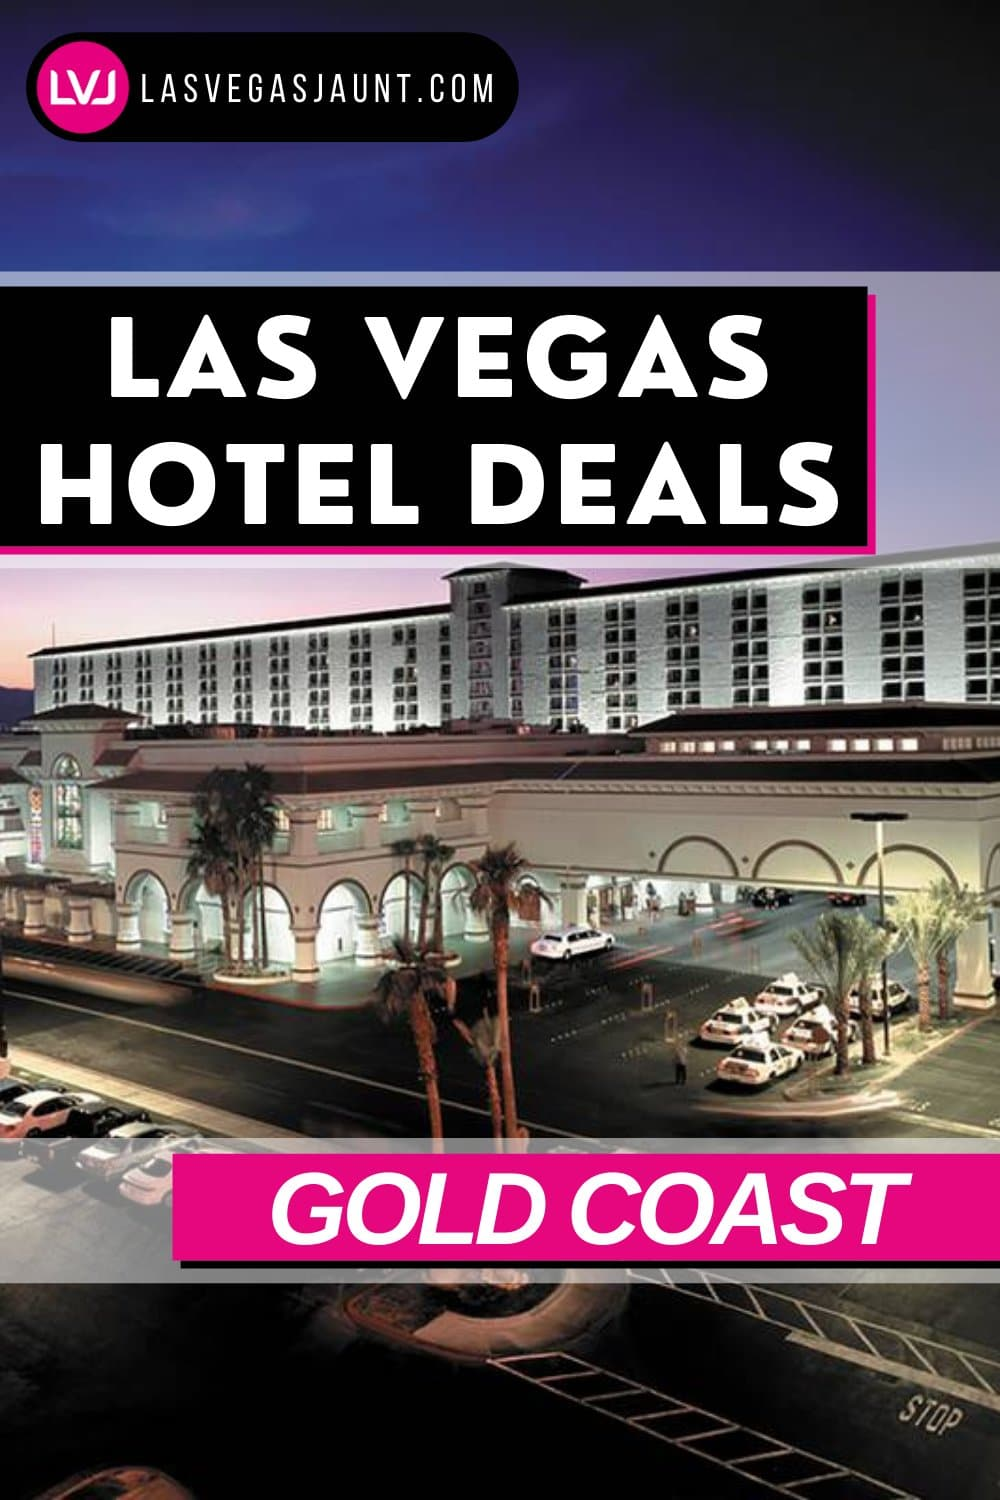 Gold Coast Hotel Las Vegas Deals Promo Codes & Discounts